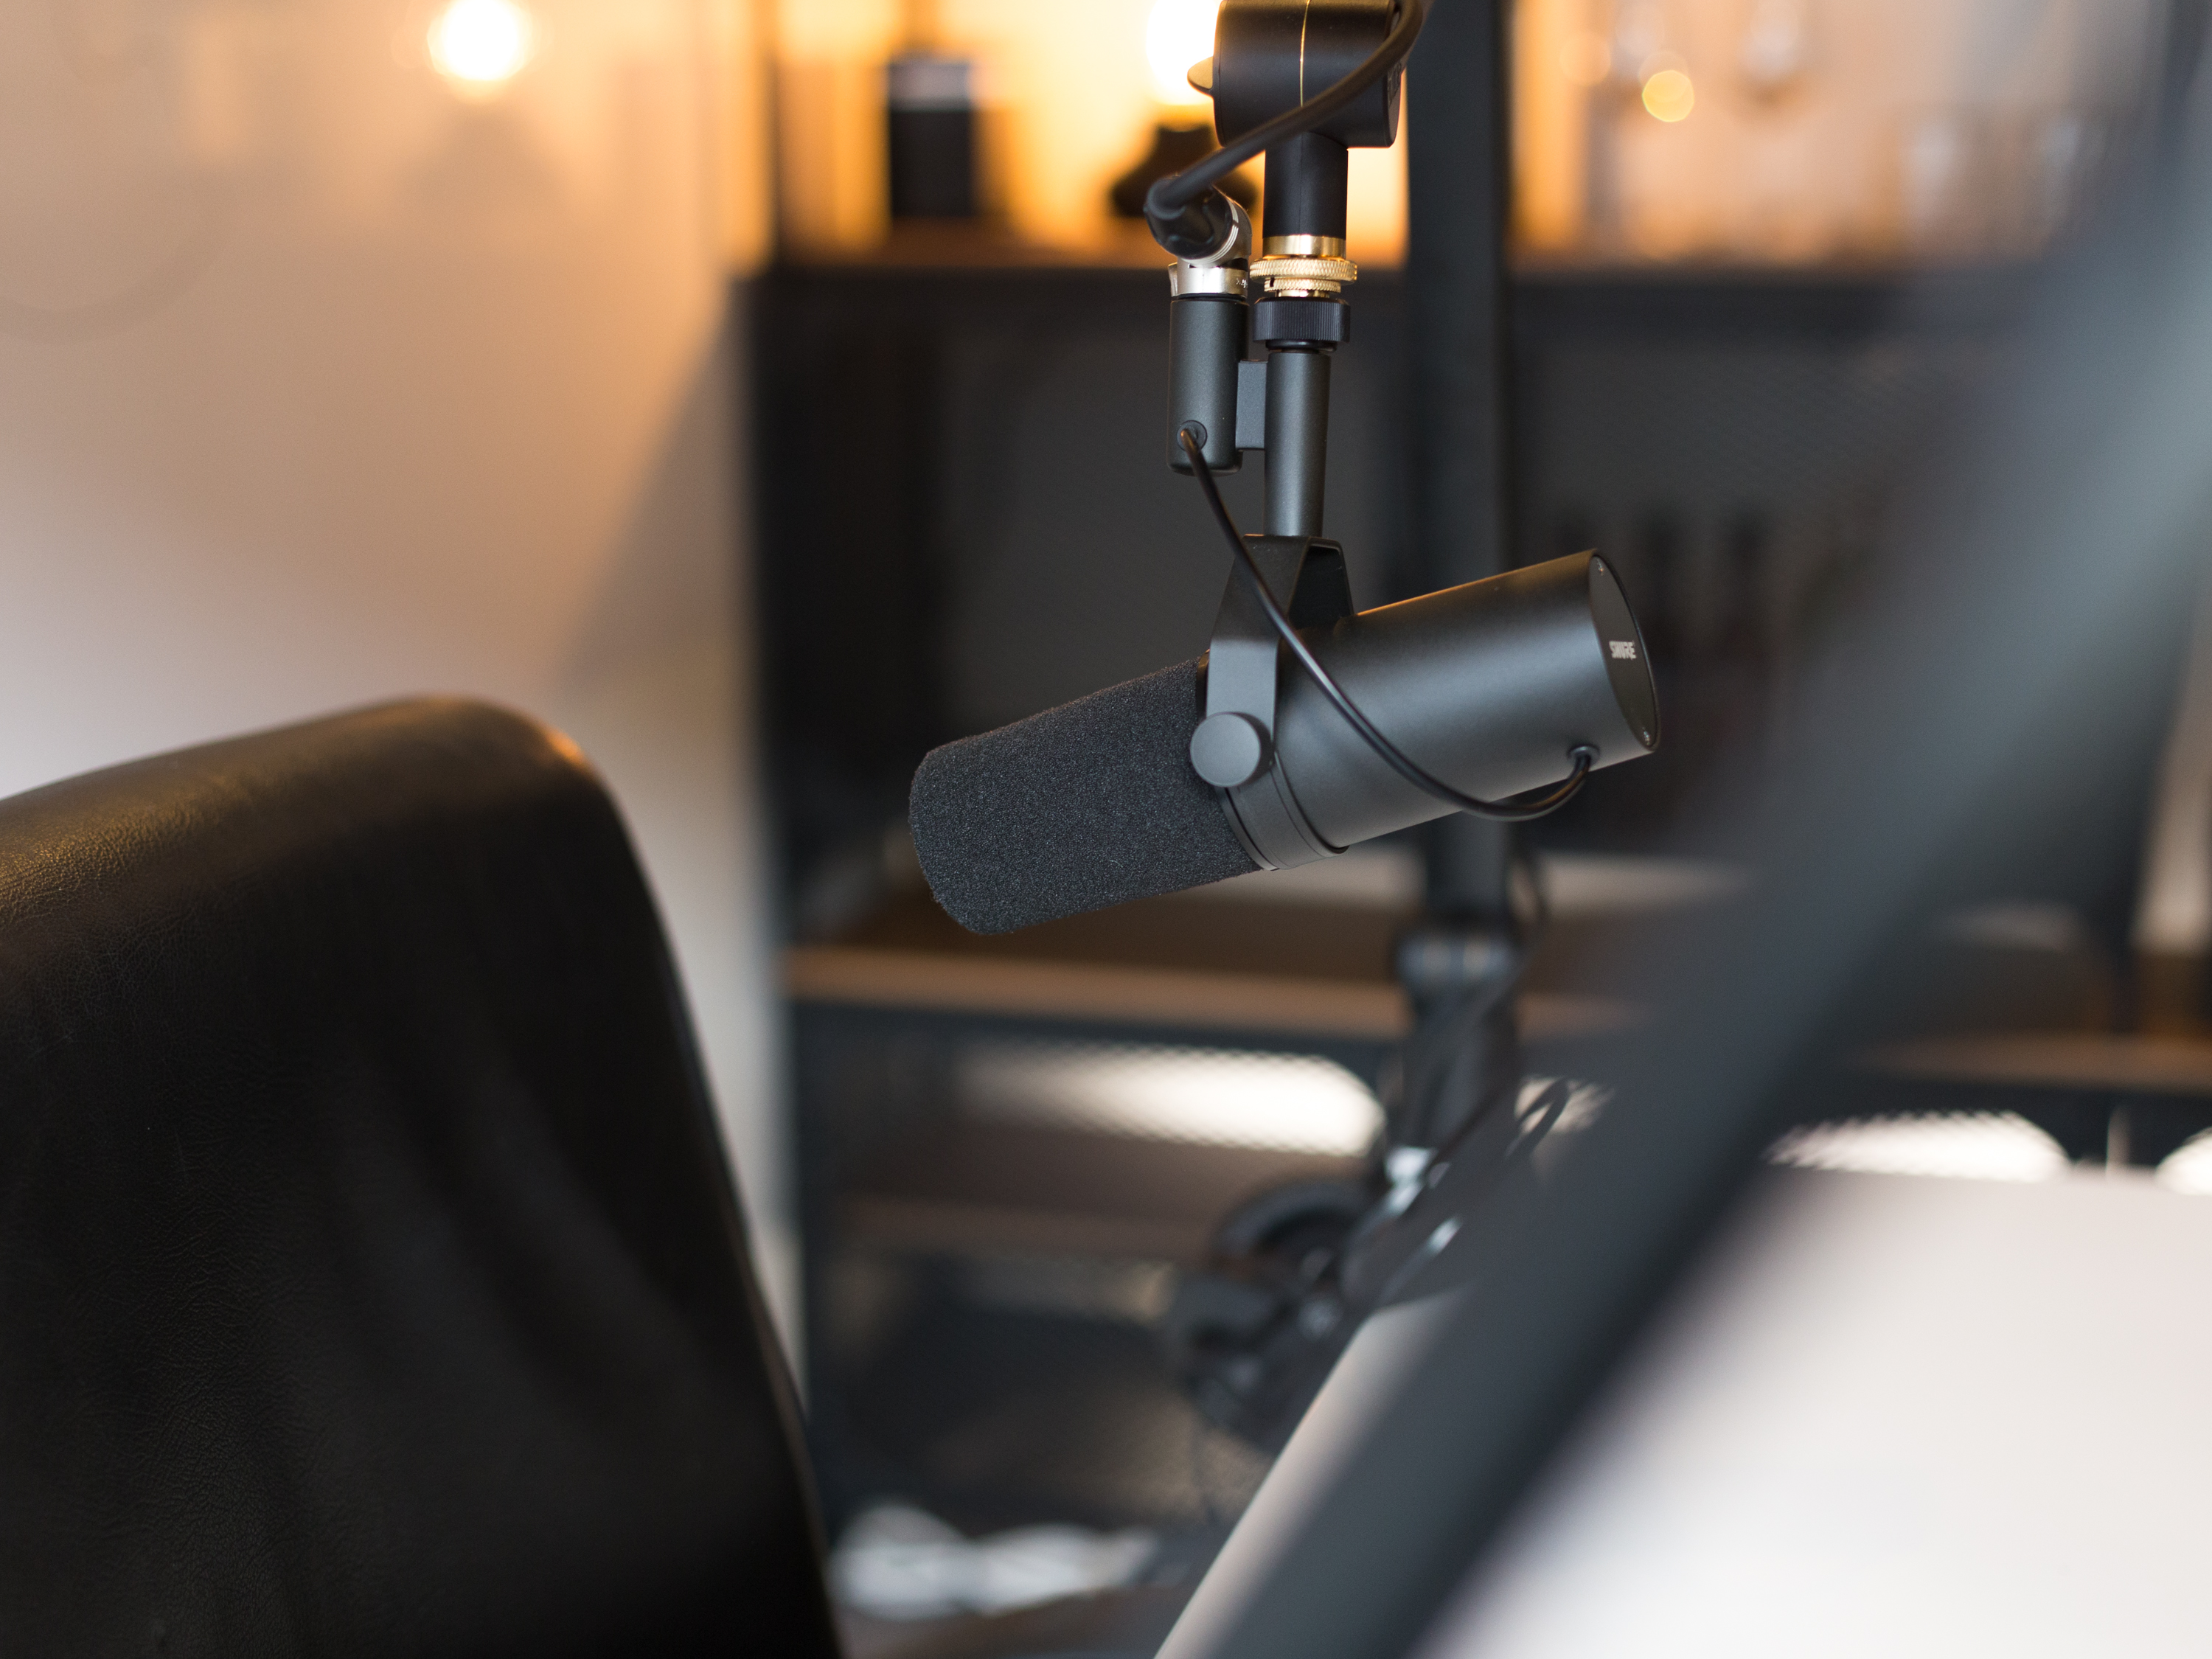 The site visit construction podcast studio SHURE mic.